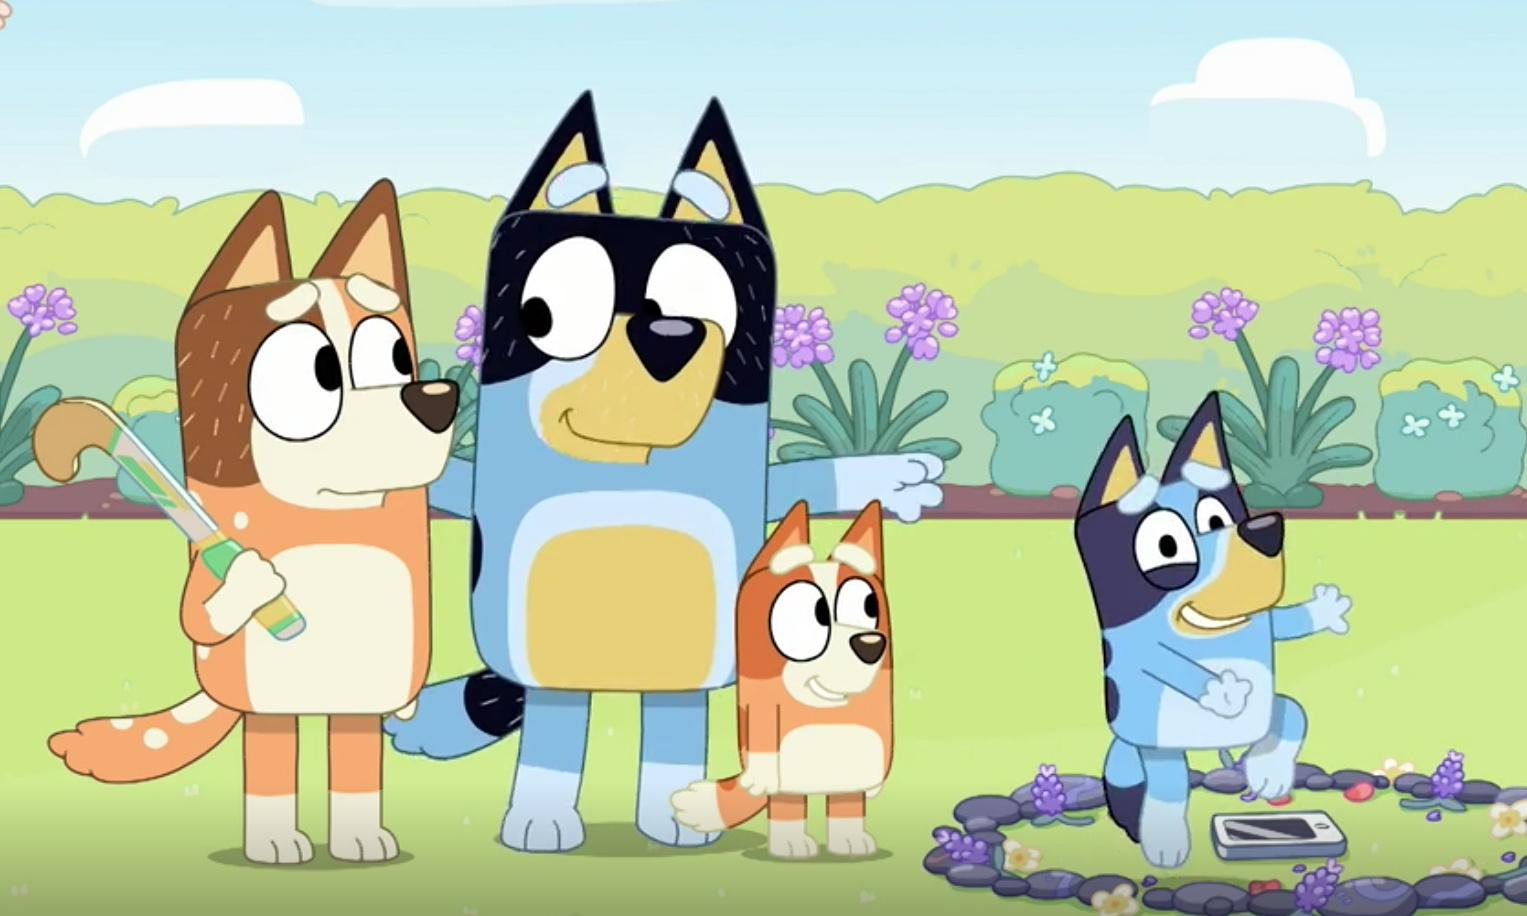 Is there a more Emmy-worthy children's show than Bluey?